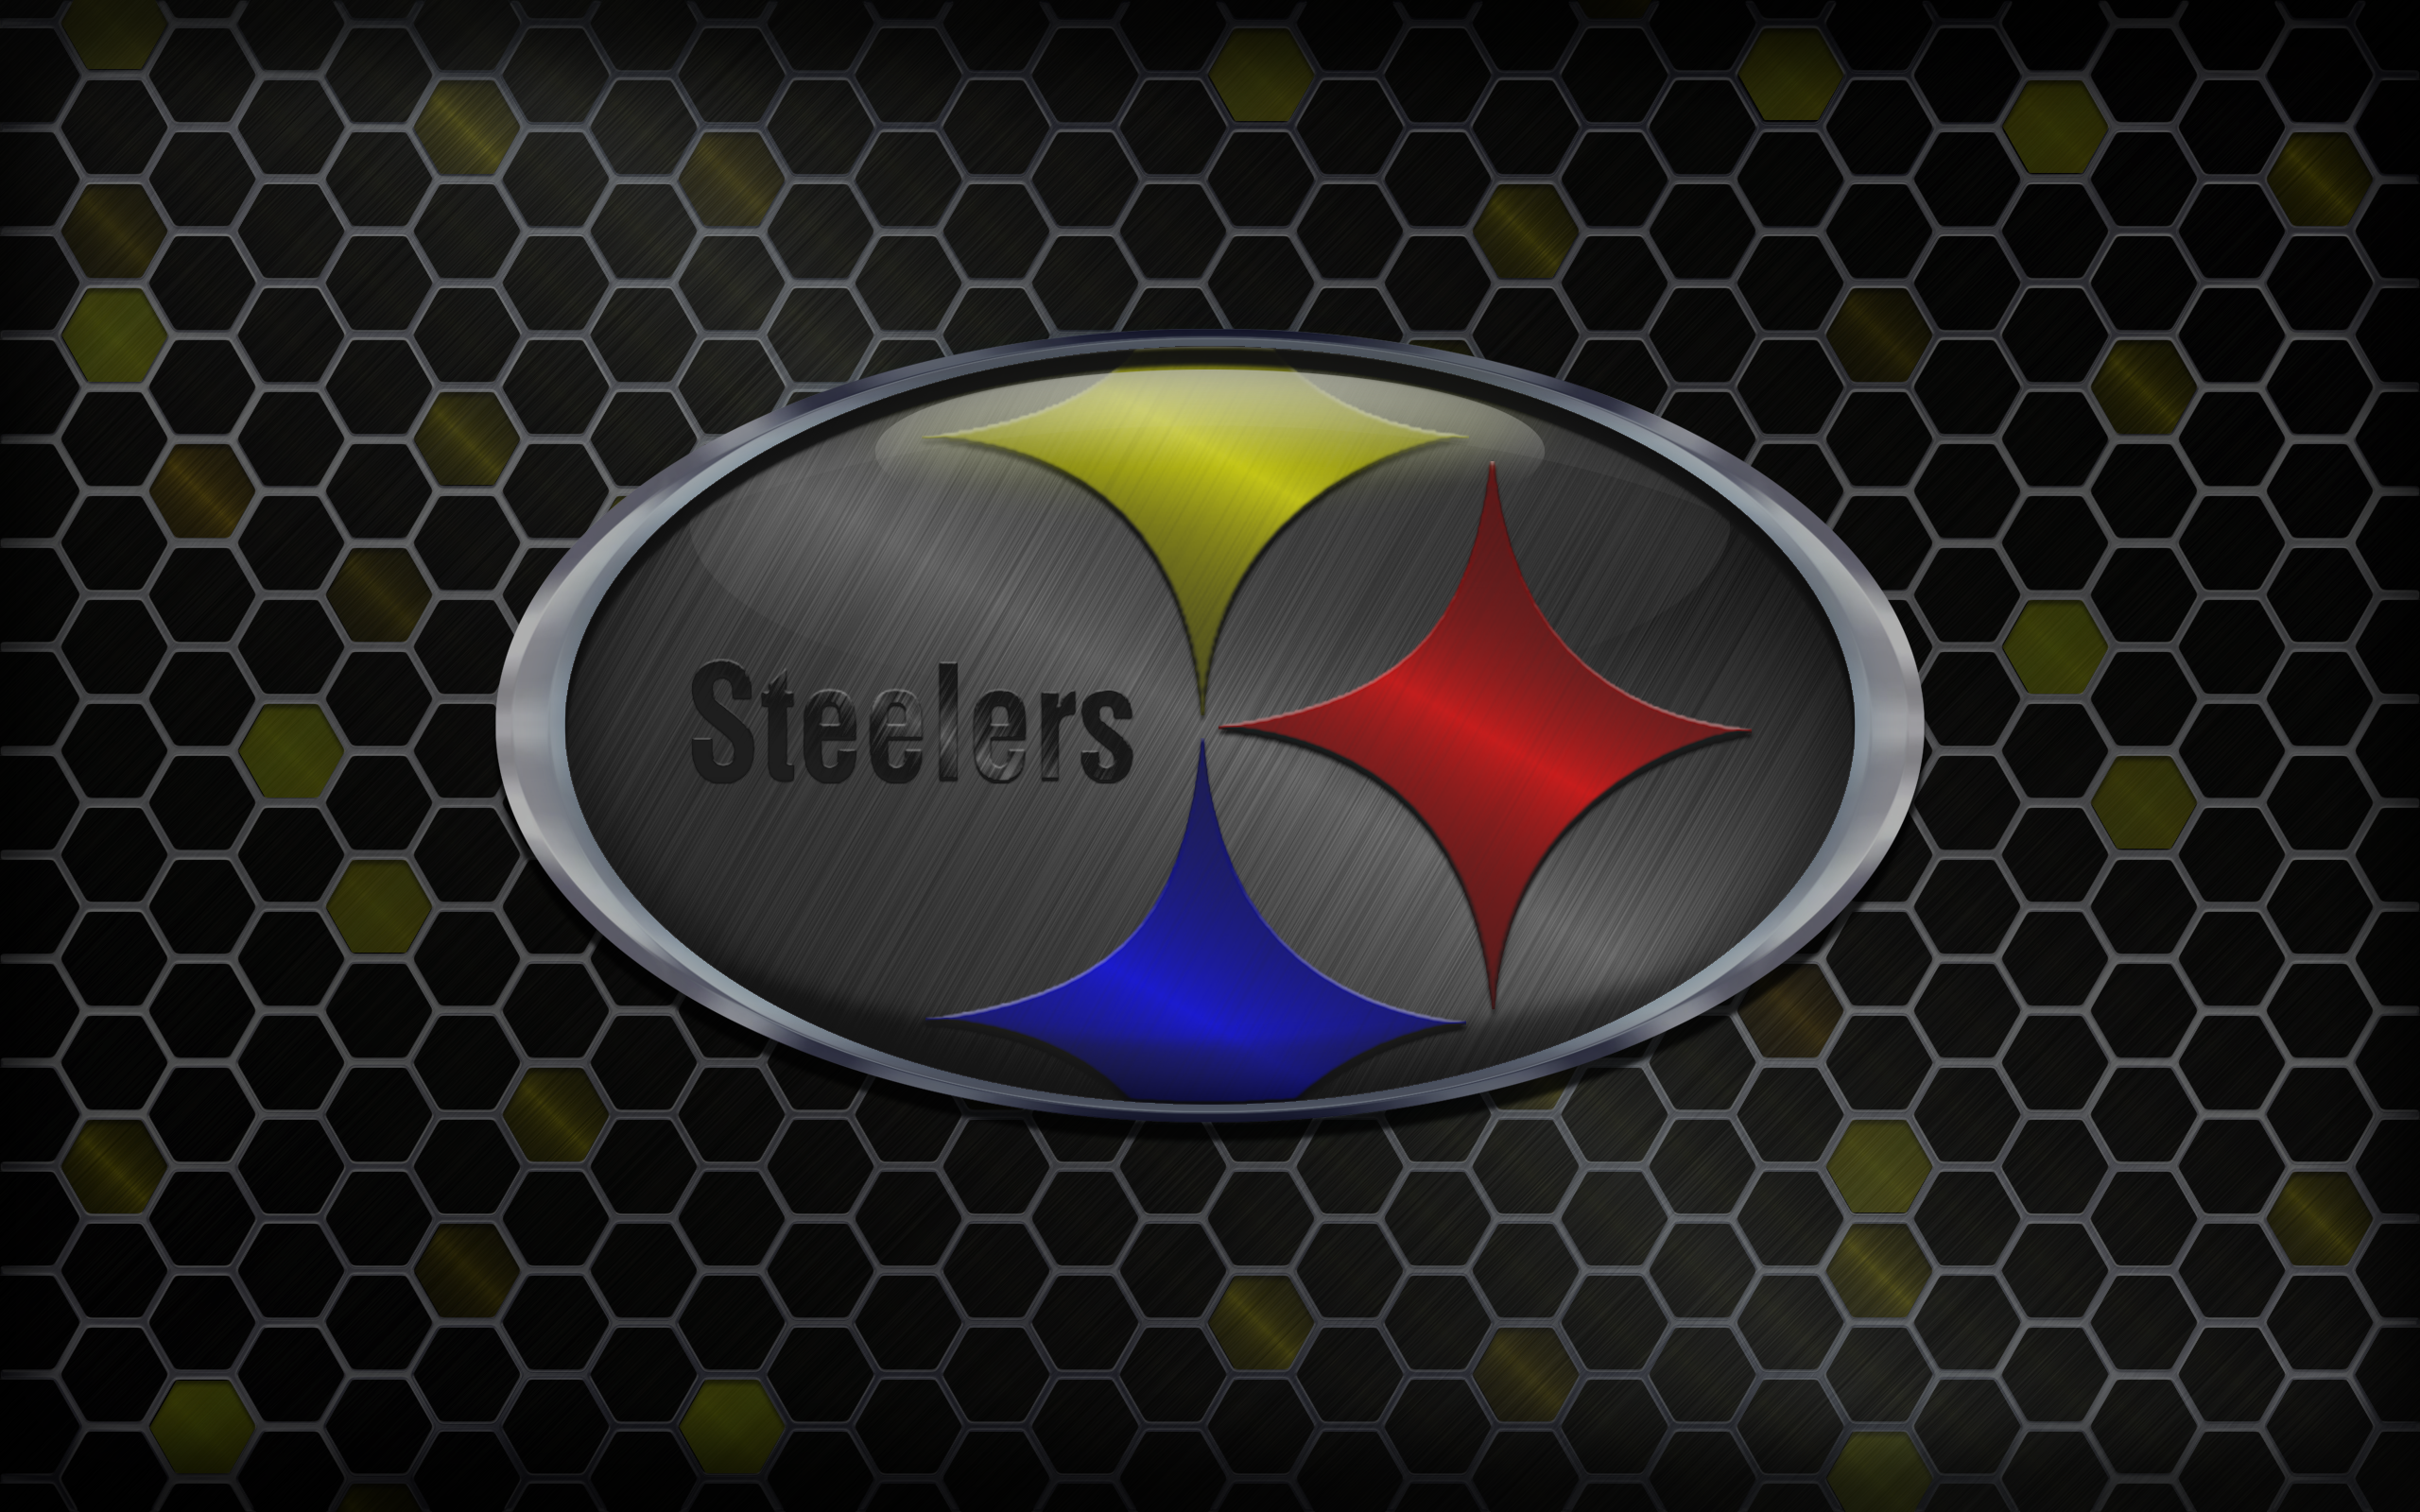 Pittsburgh Steelers wallpaper HD wallpaper 2560x1600